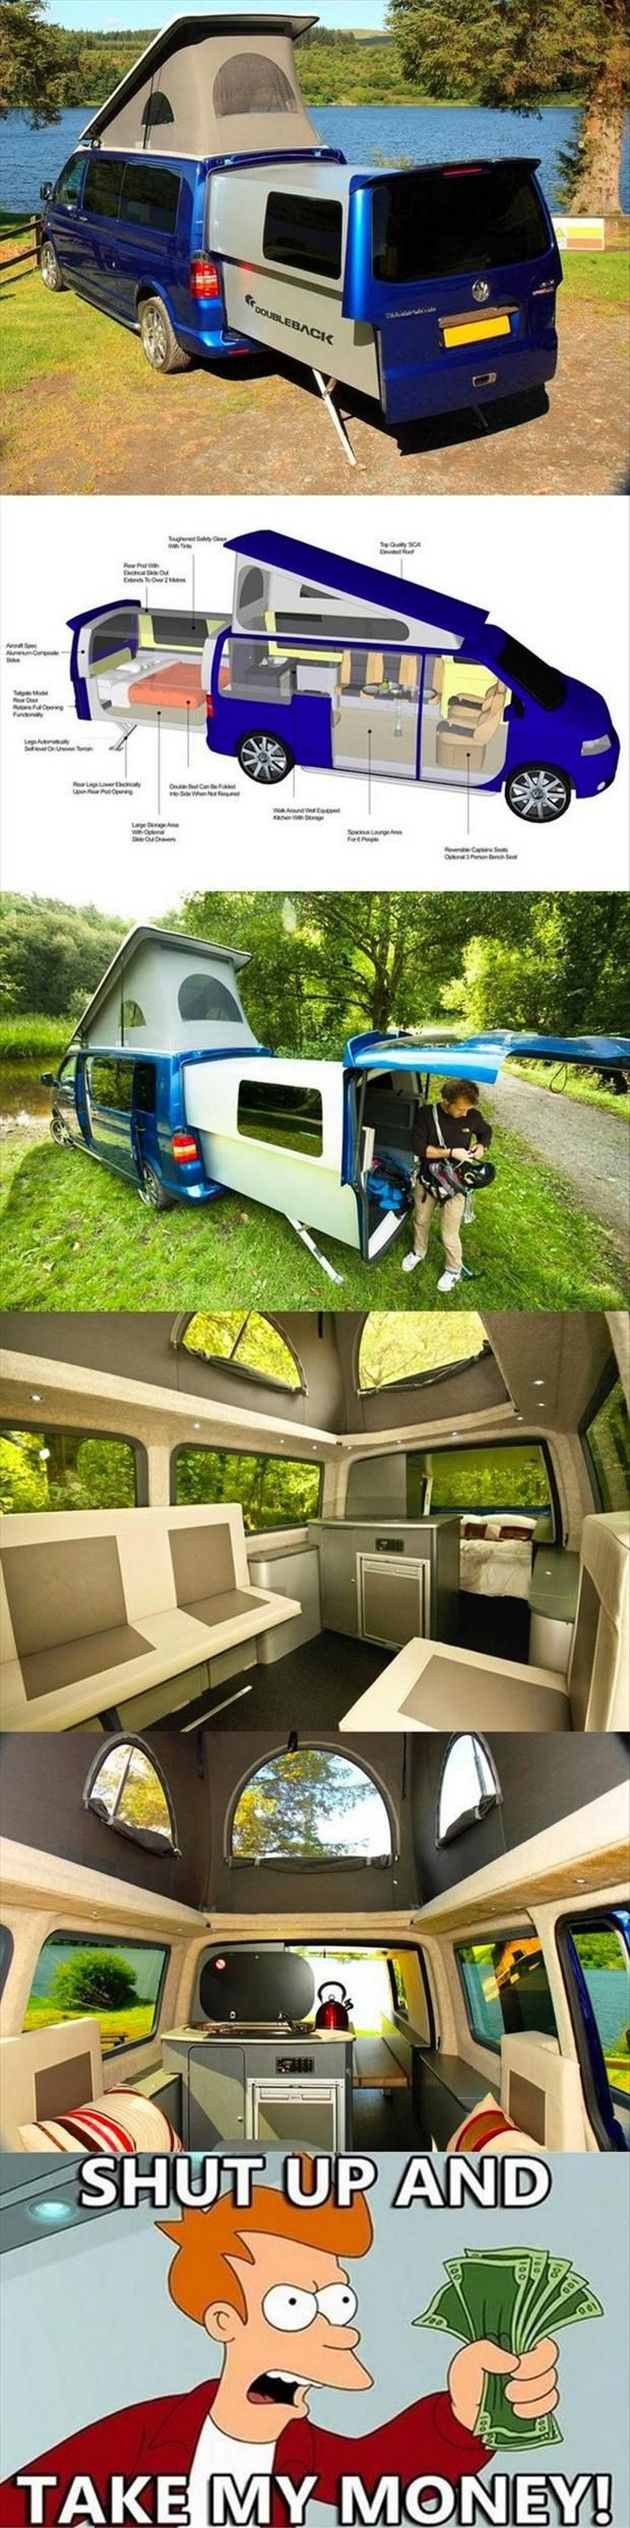 Cool Stuff I Want (08 Pics) Shut up and take my money!